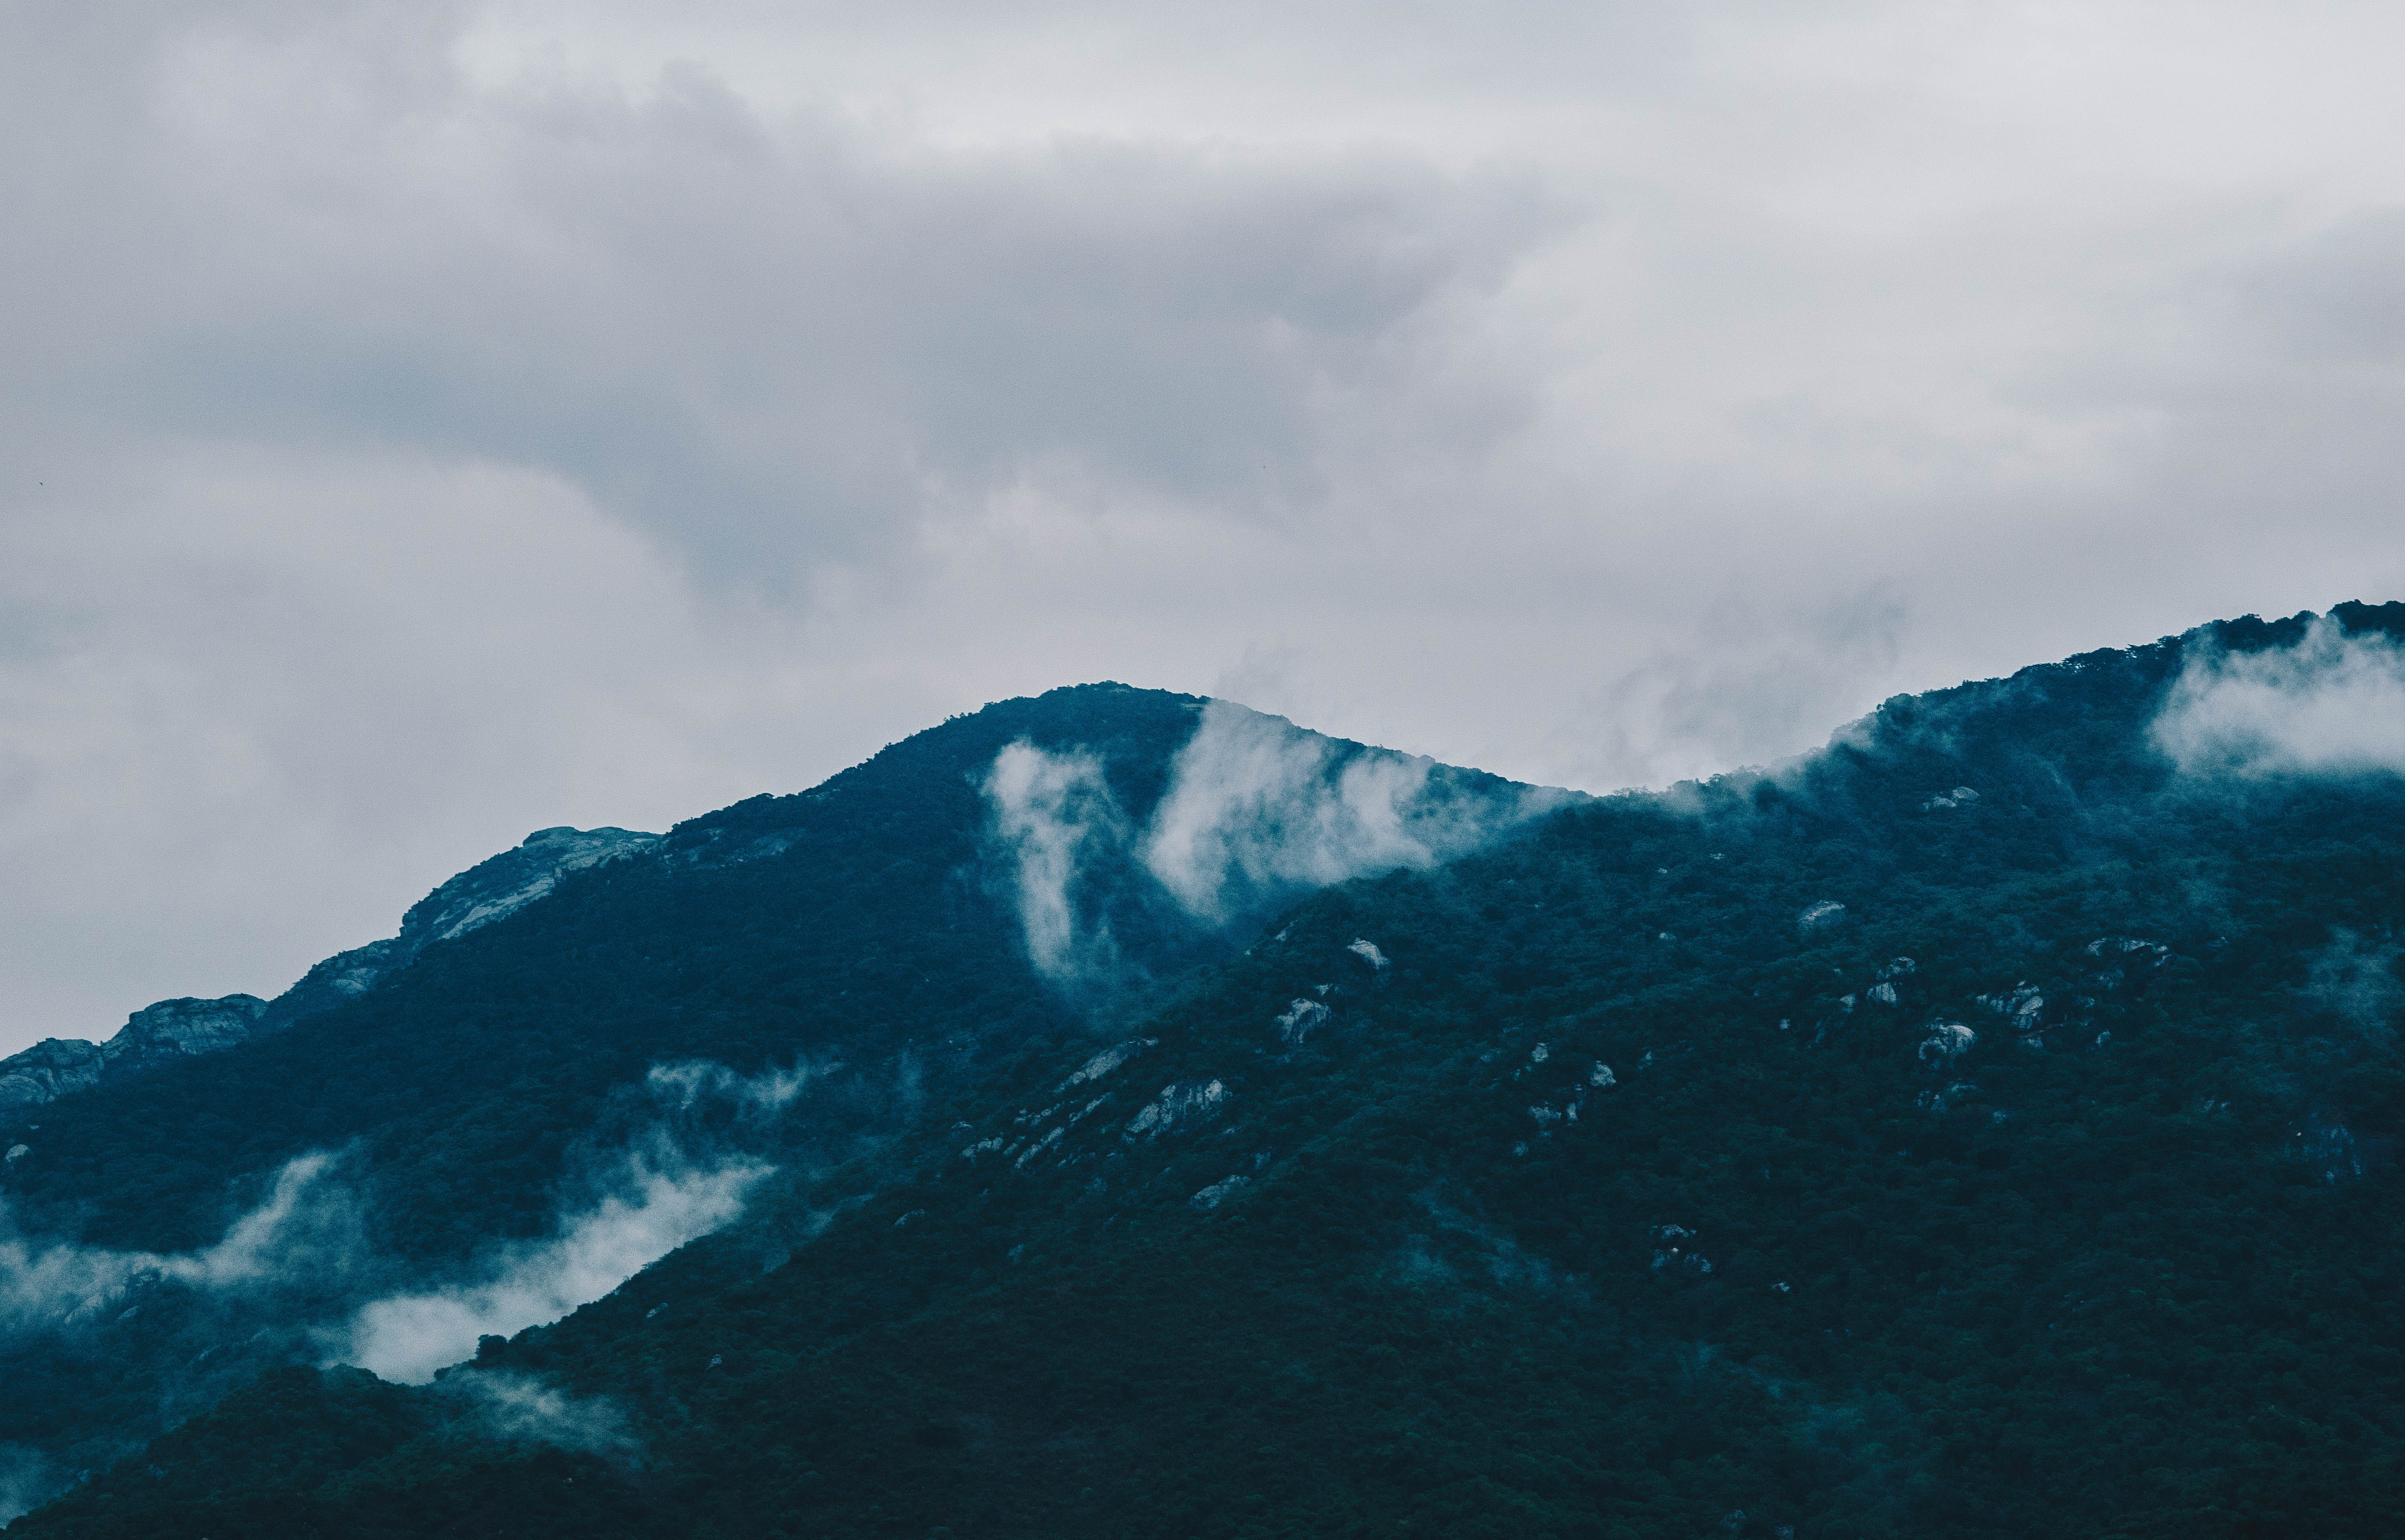 Photography of Mountain Under Cloudy Sky